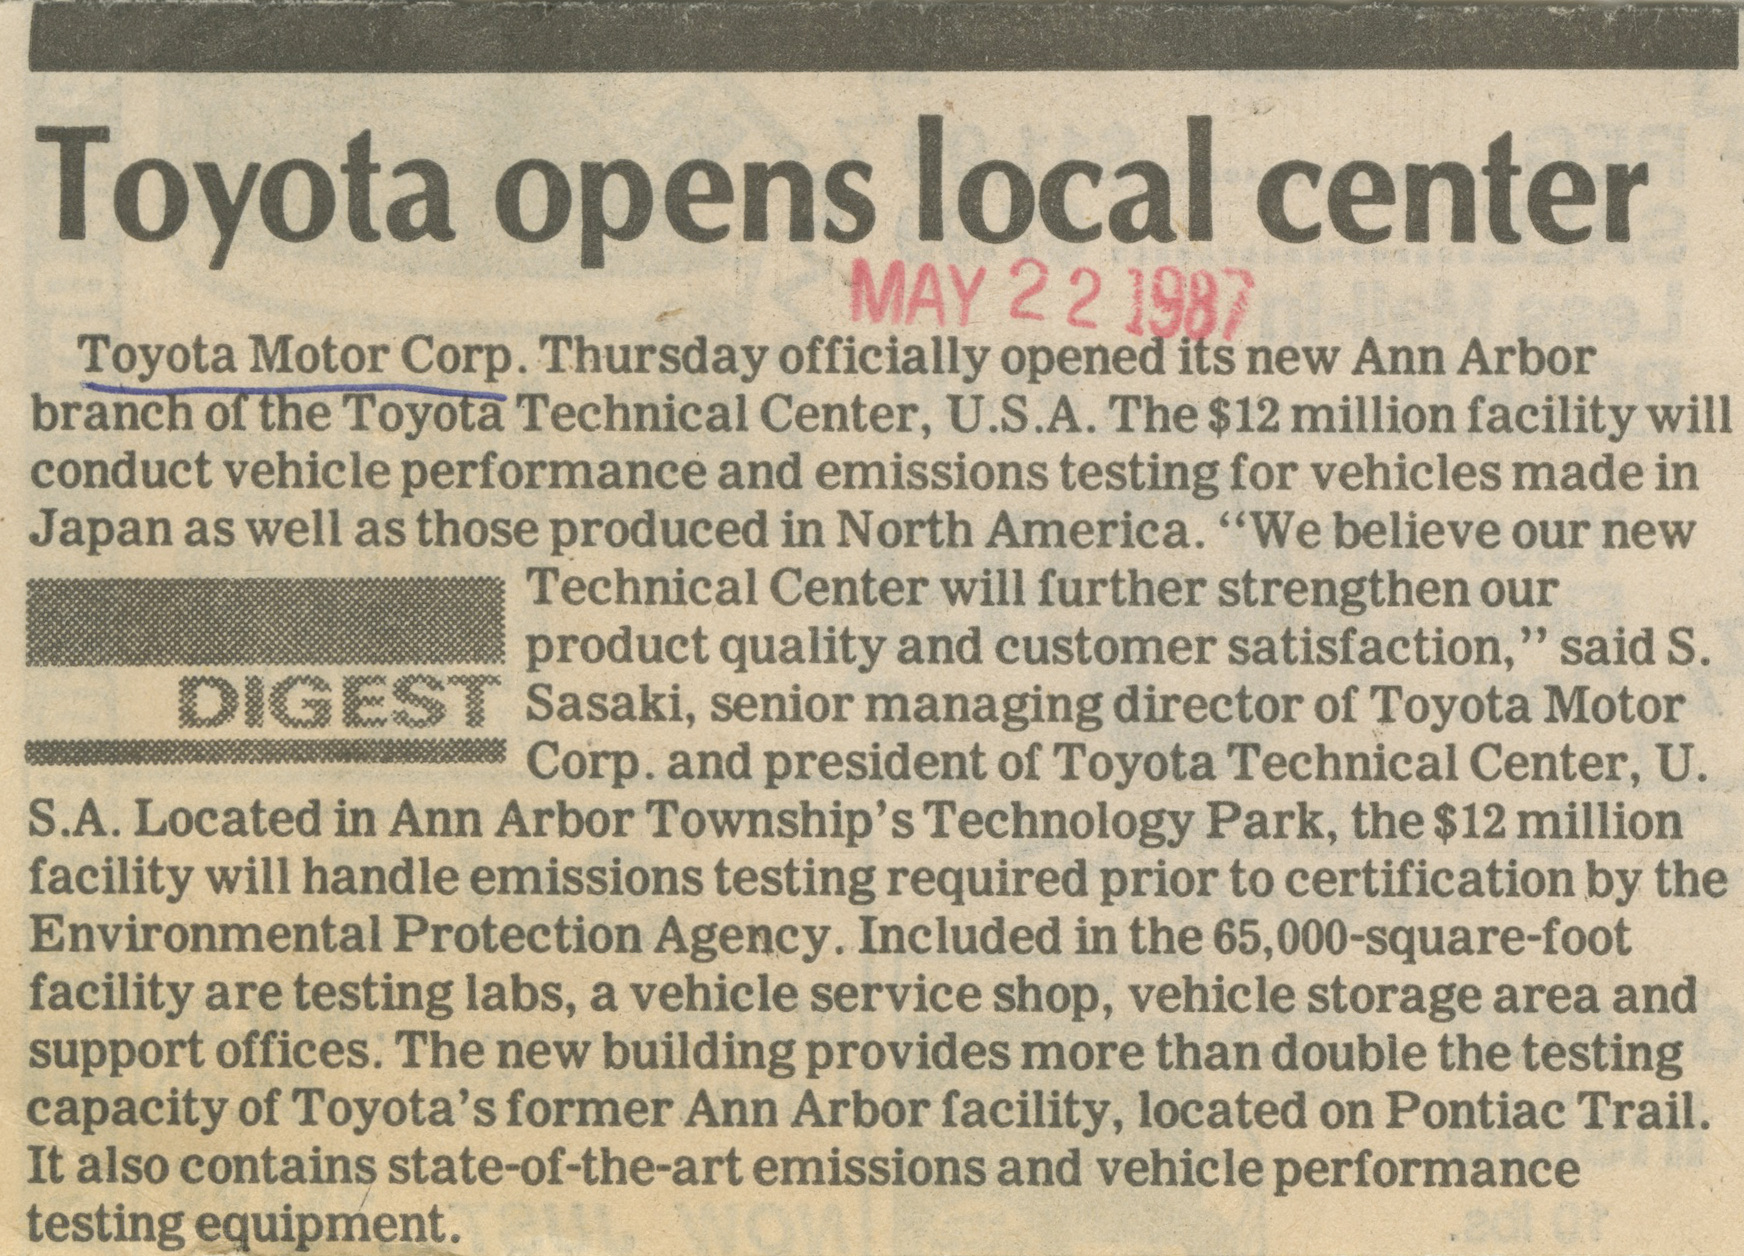 Toyota Opens Local Center image